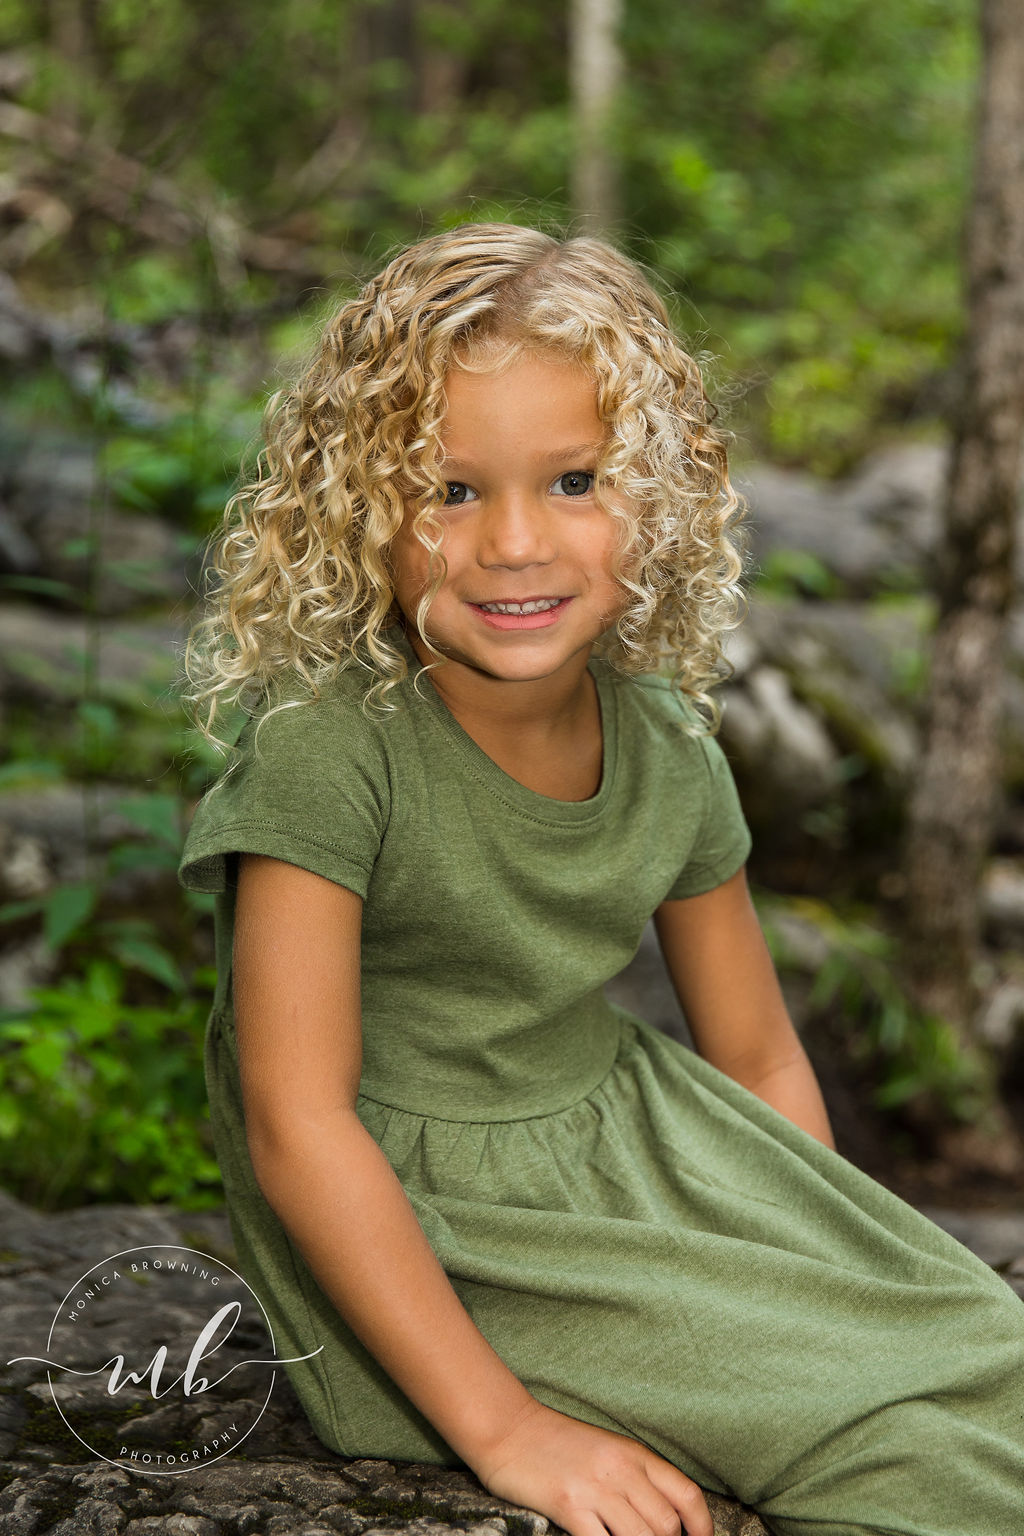 monica browning photography manlius ny photographer syracuse ny child photographer